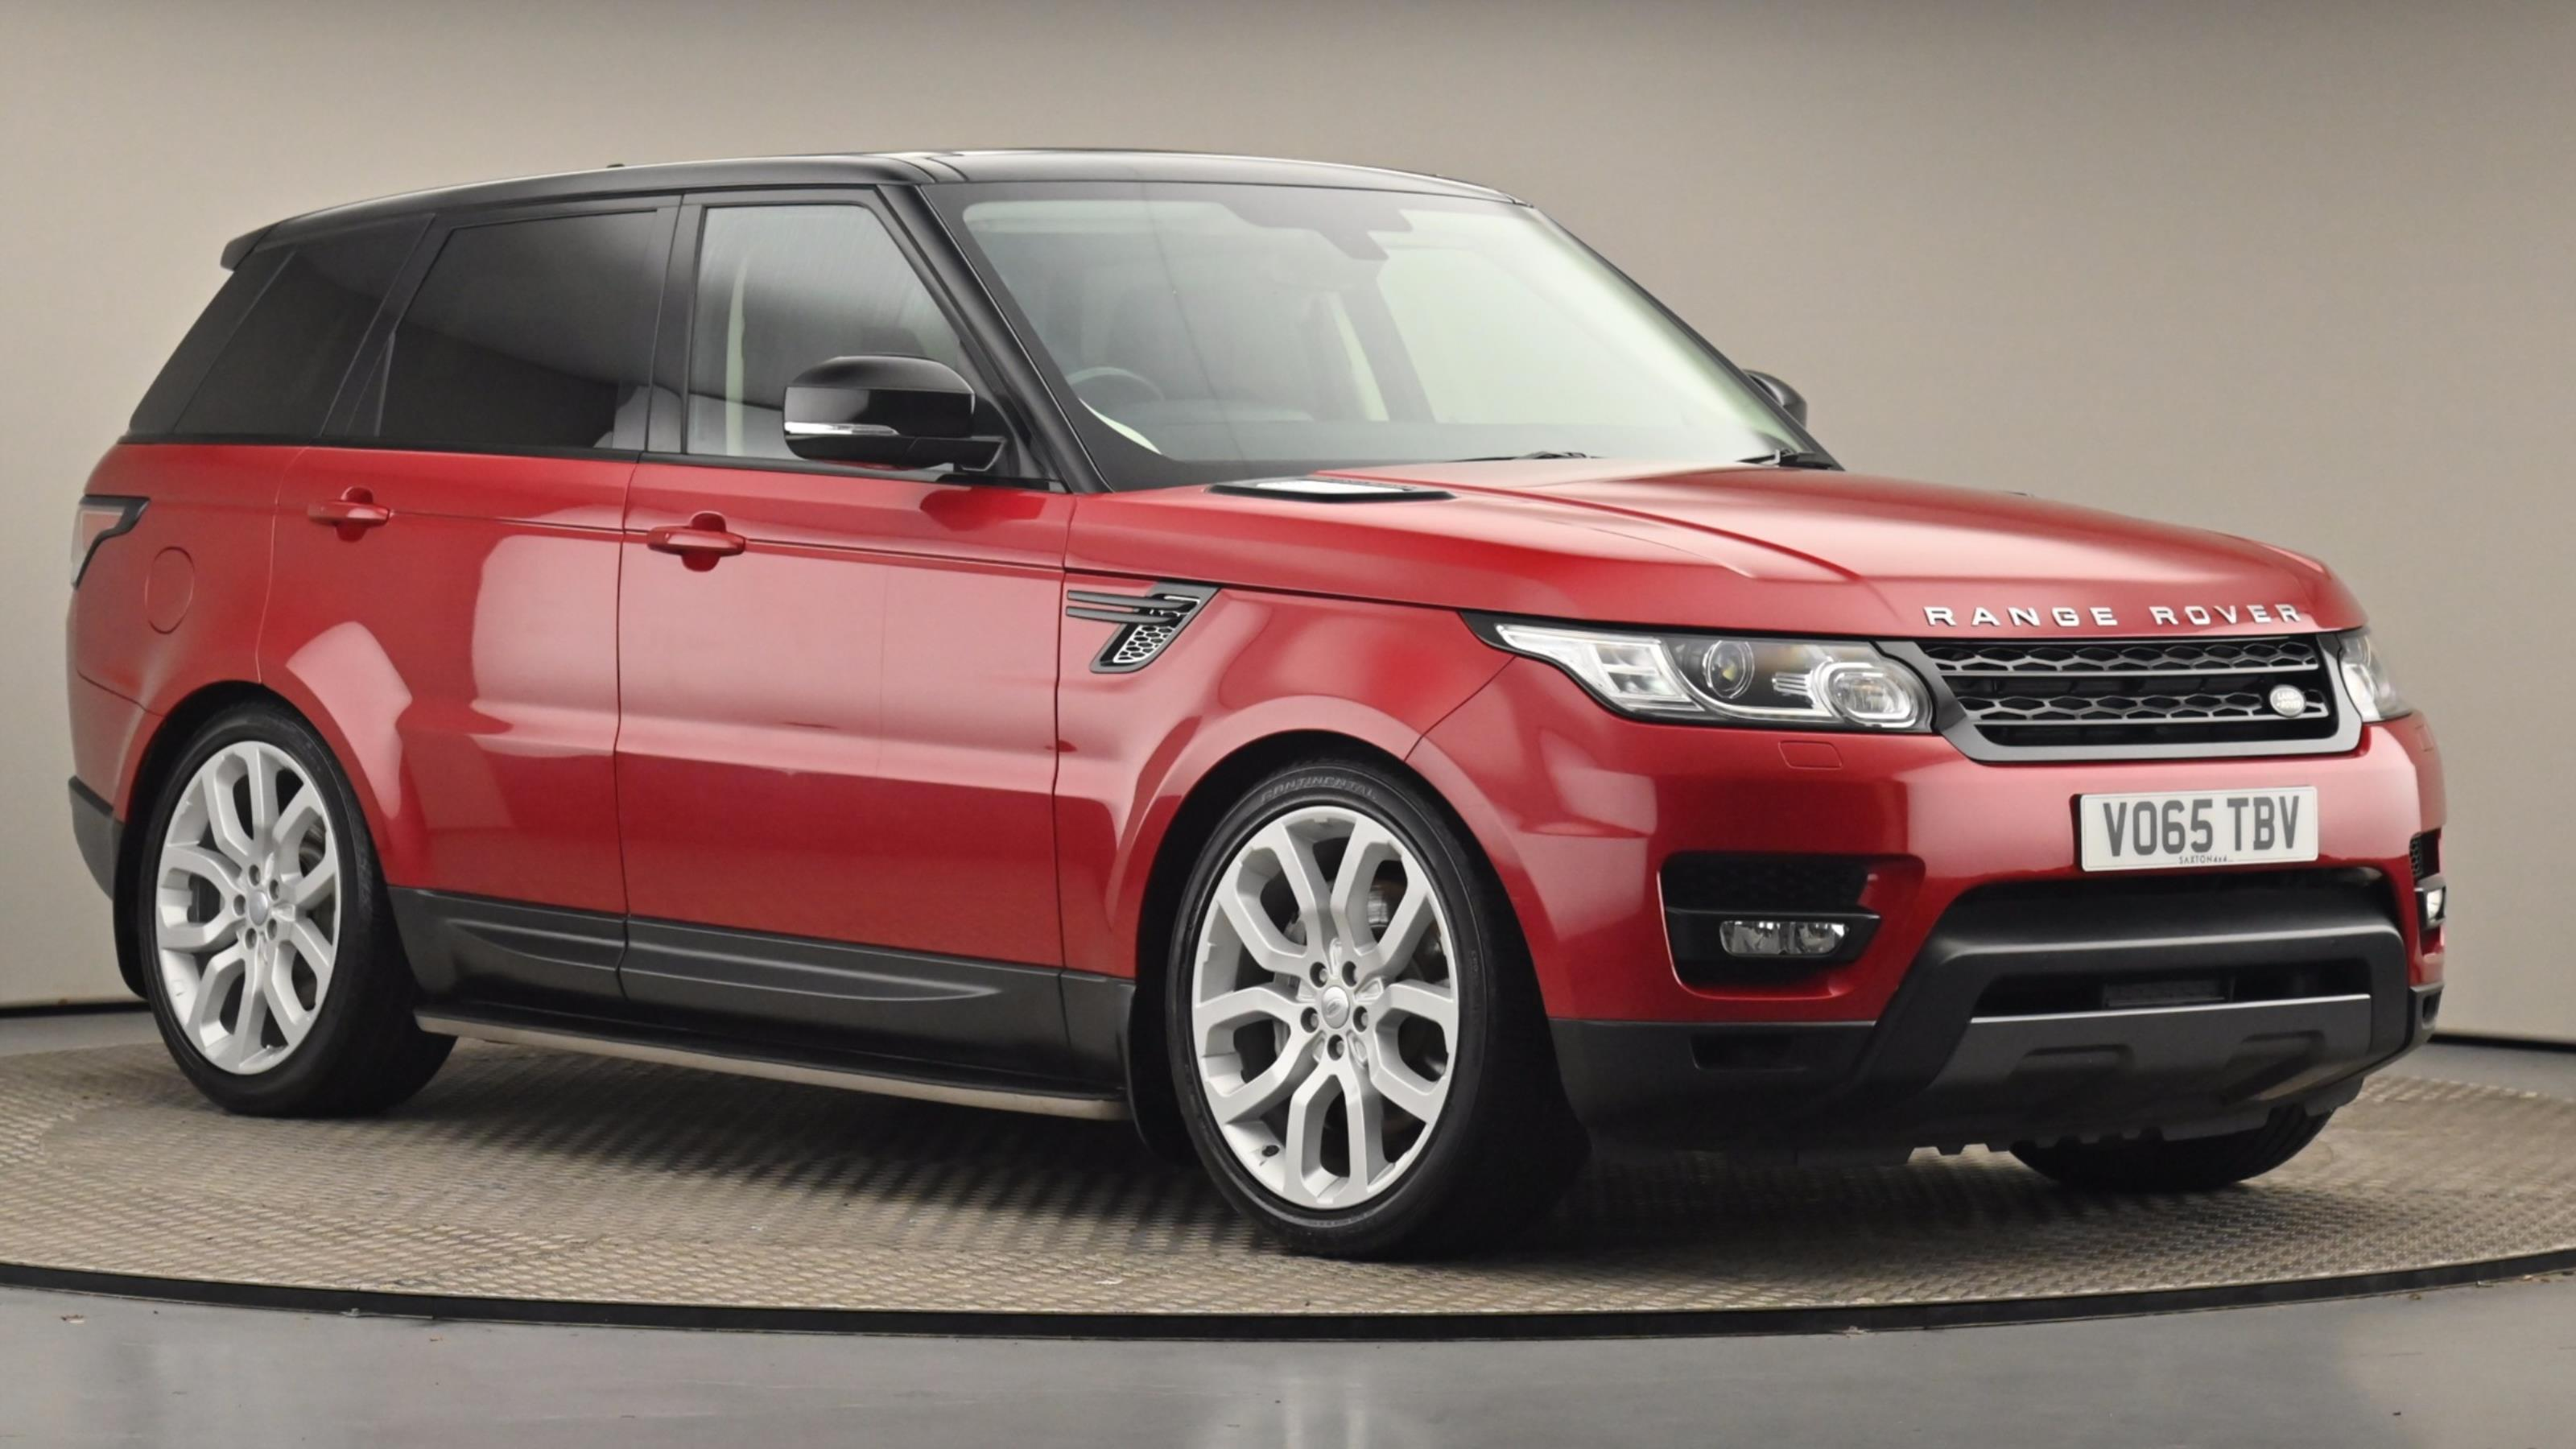 Used 2015 Land Rover RANGE ROVER SPORT 3.0 SDV6 [306] HSE Dynamic 5dr Auto at Saxton4x4